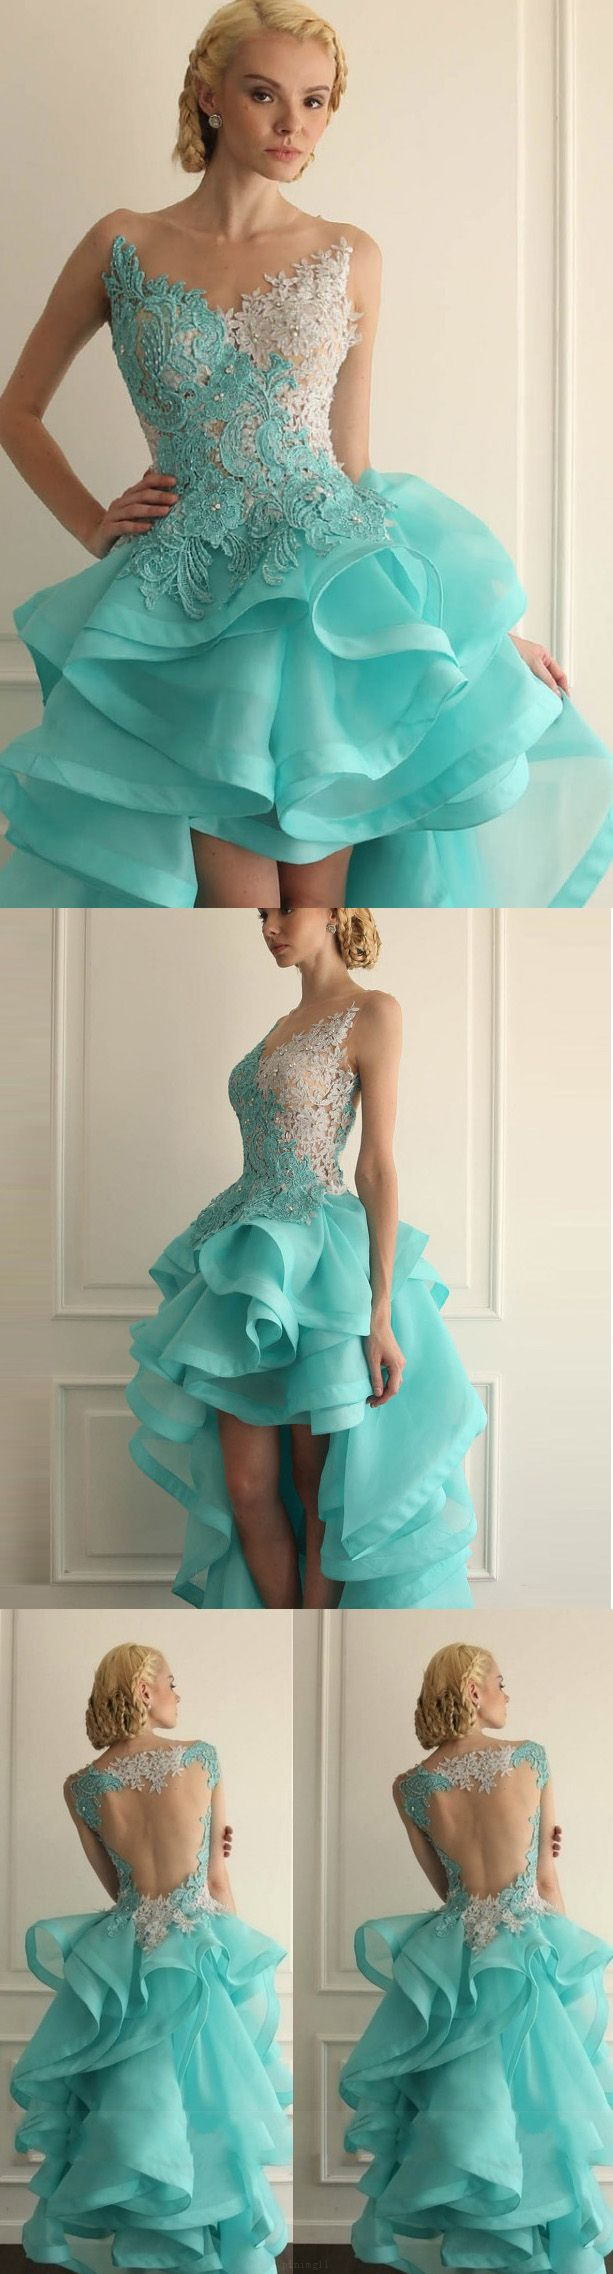 Cute light blue short homecoming prom dress with openback ruffles